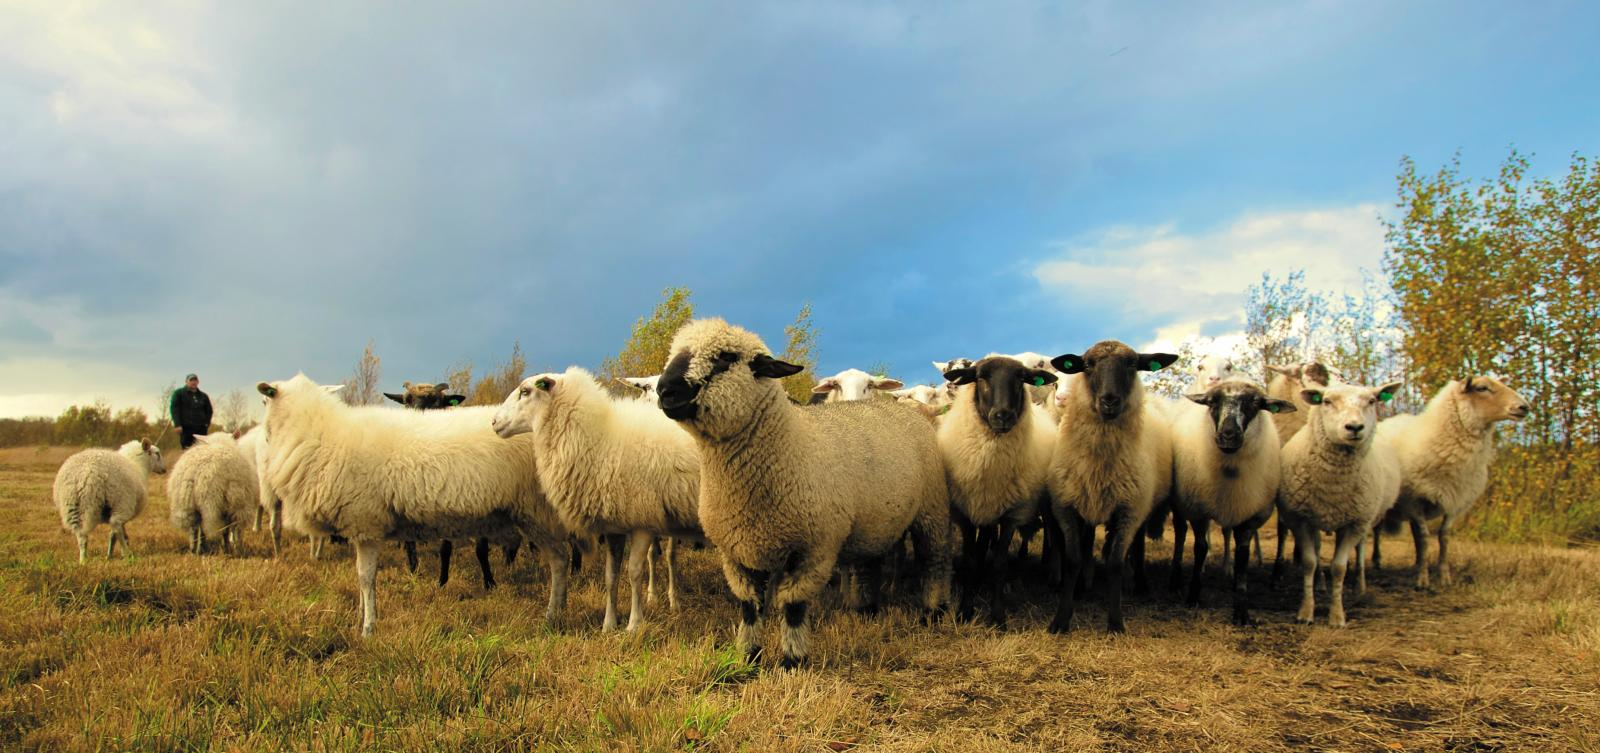 Sheep. Photo credit: Alexander Matthias at pexels